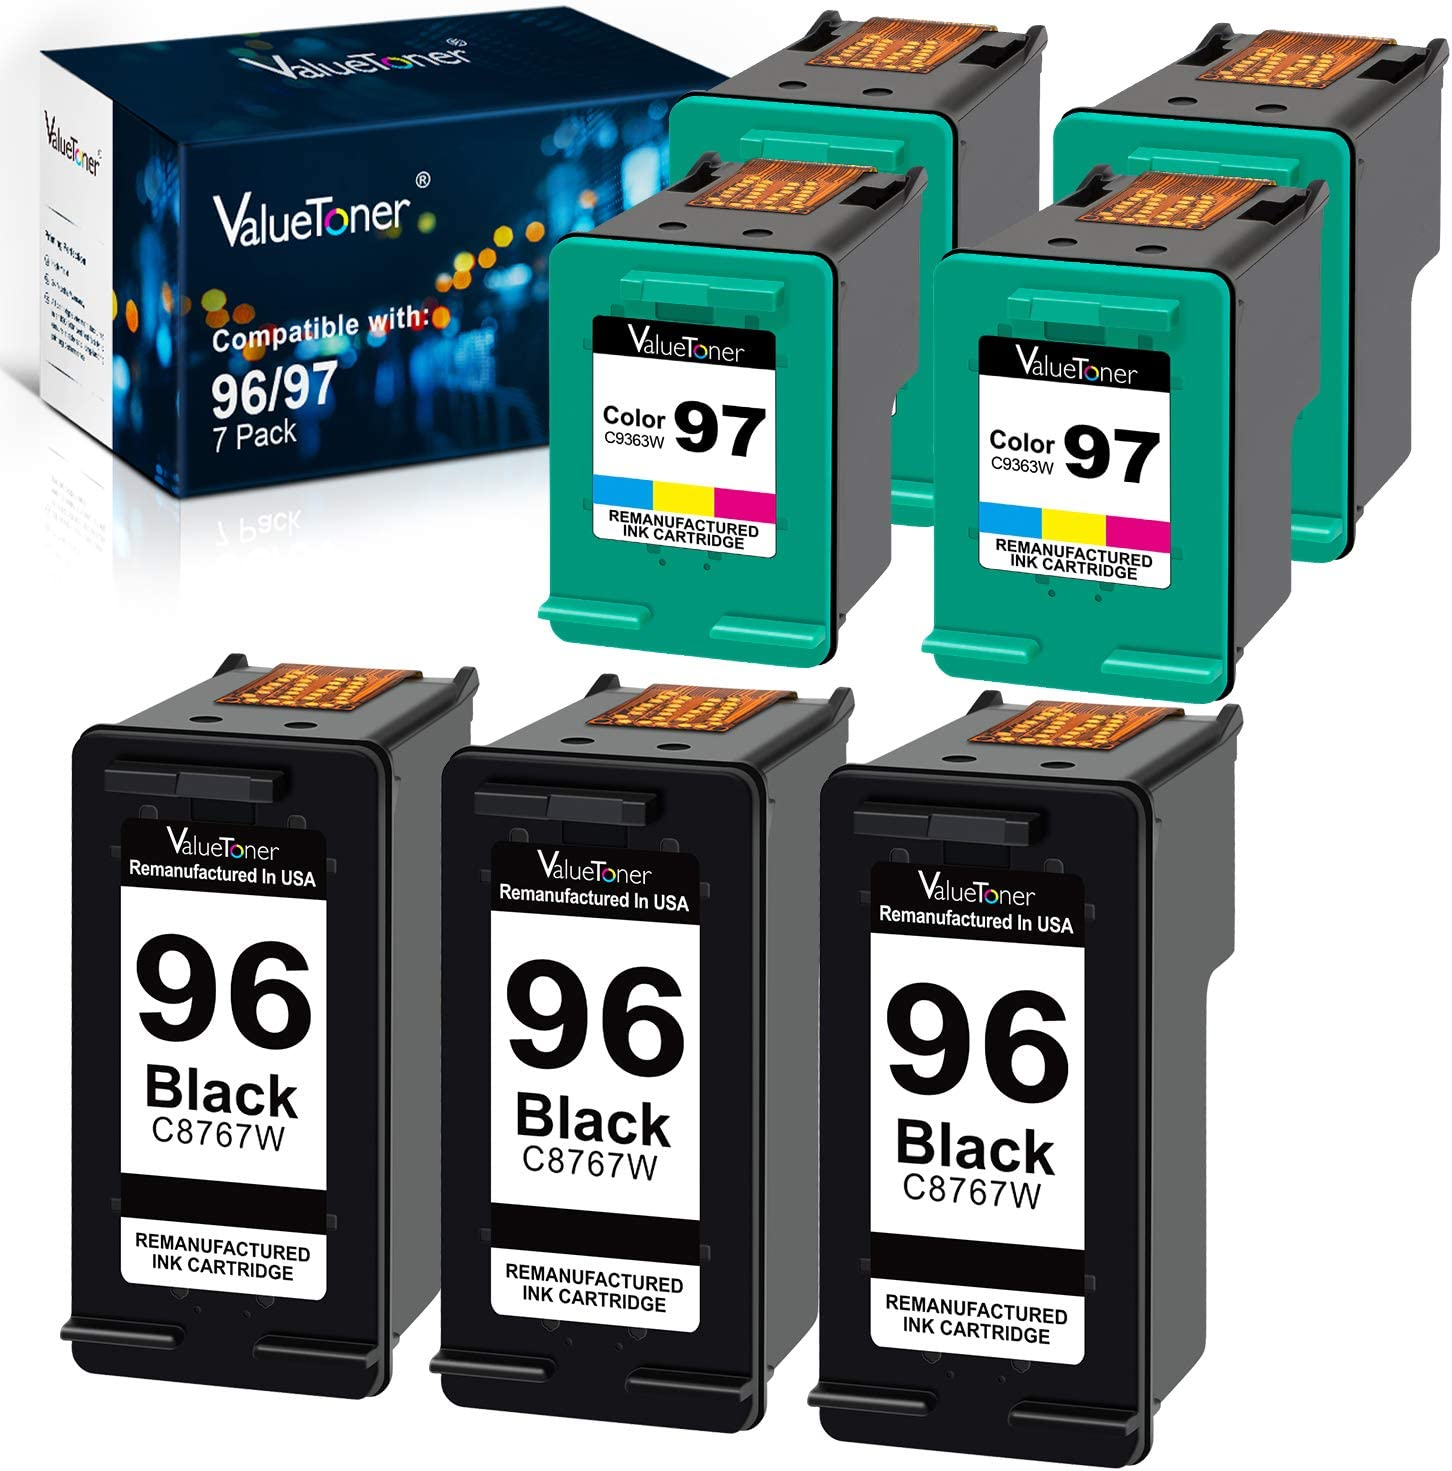 Vauletoner Remanufactured Ink Cartridges Replacement for HP 96 97 5 Pack (3 Black, 2 Tri-Color) Bundled with 2 Color